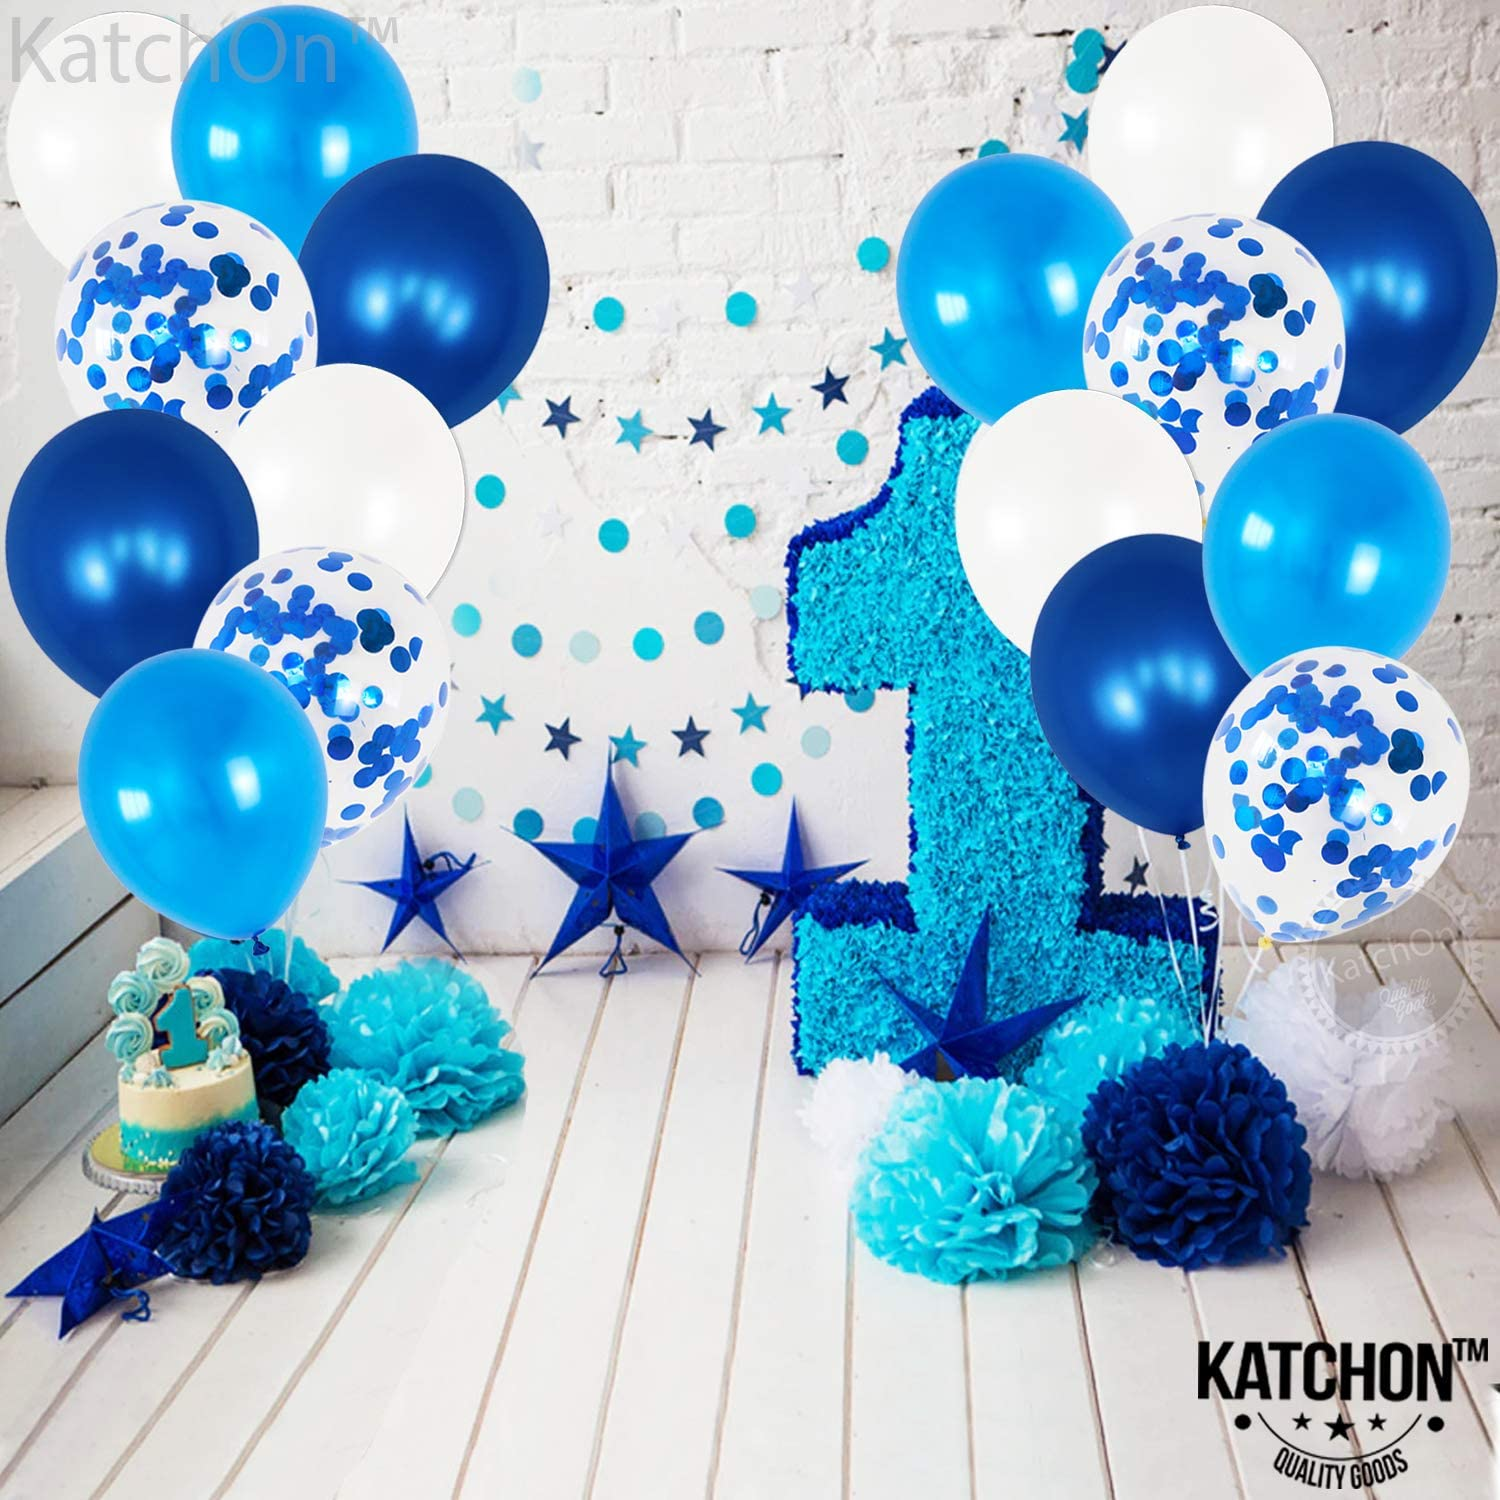 Light Blue Navy Blue Balloons and White Balloons Set Balloons Blue and White Confetti Decor Latex White Gray Blue Balloons Party Decoration for Birthday Graduation or Bridal Shower Pack of 60